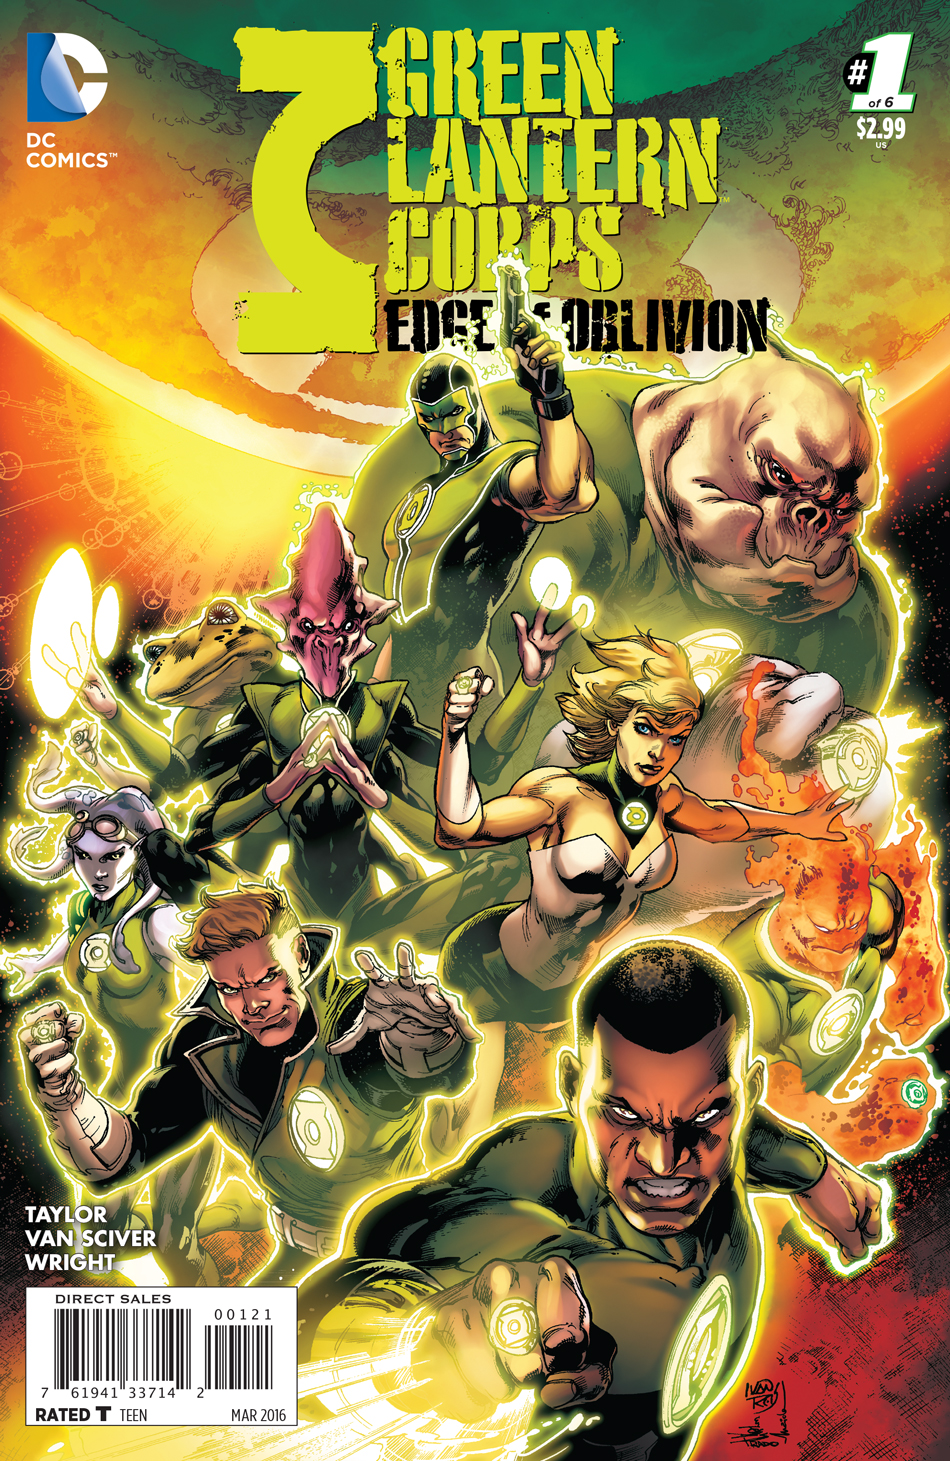 DC Preview: Green Lantern Corps: Edge of Oblivion #1